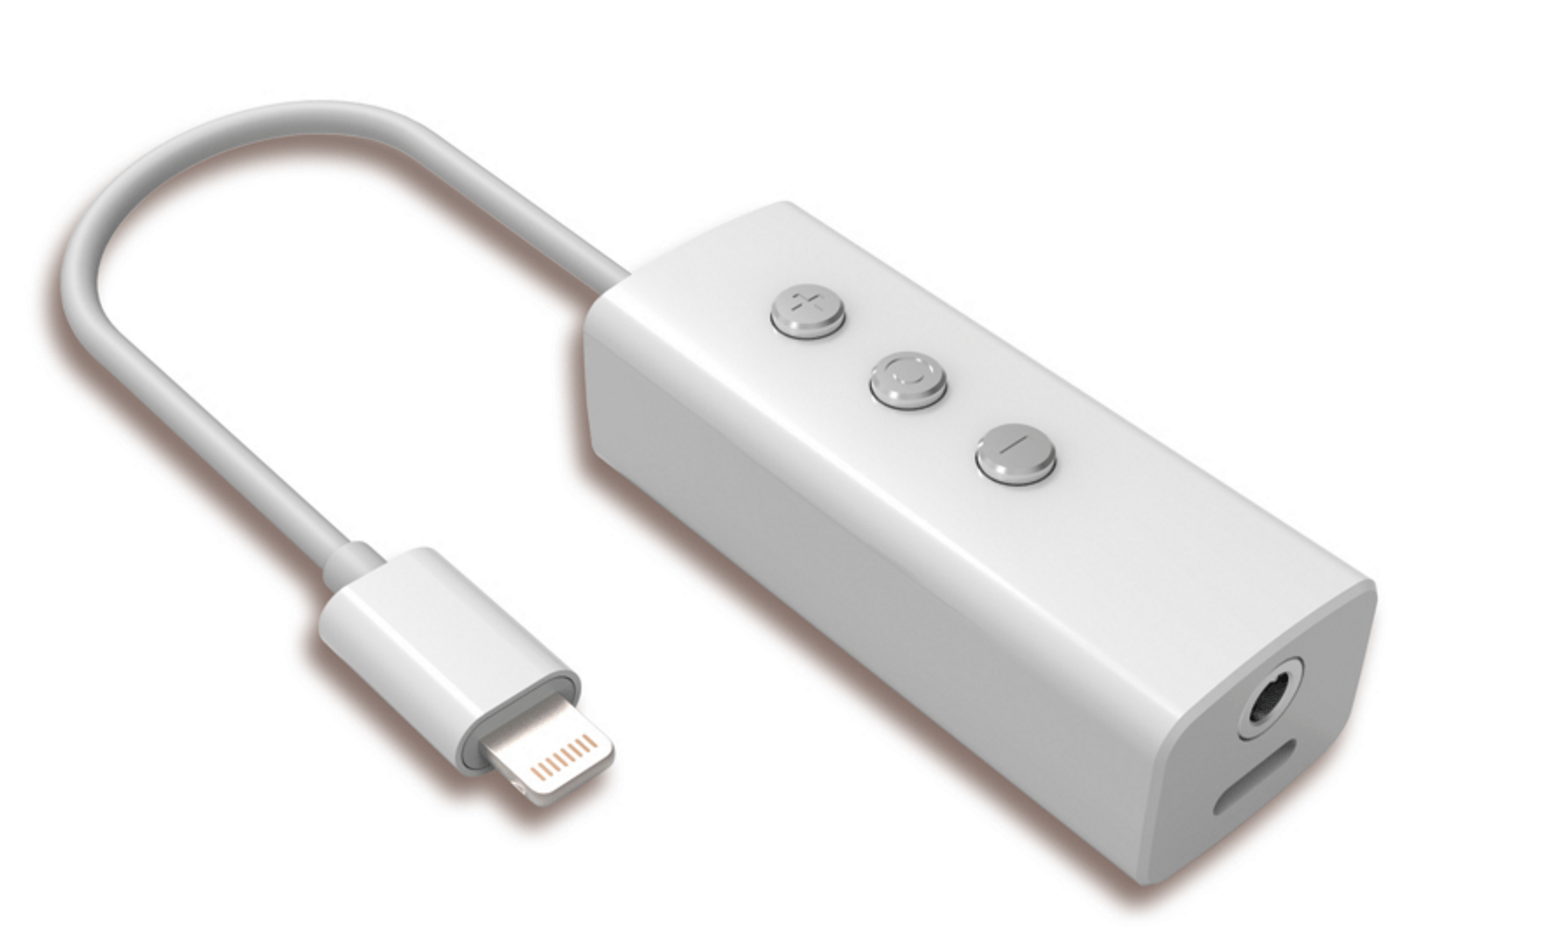 Where To Buy Iphone Dongle